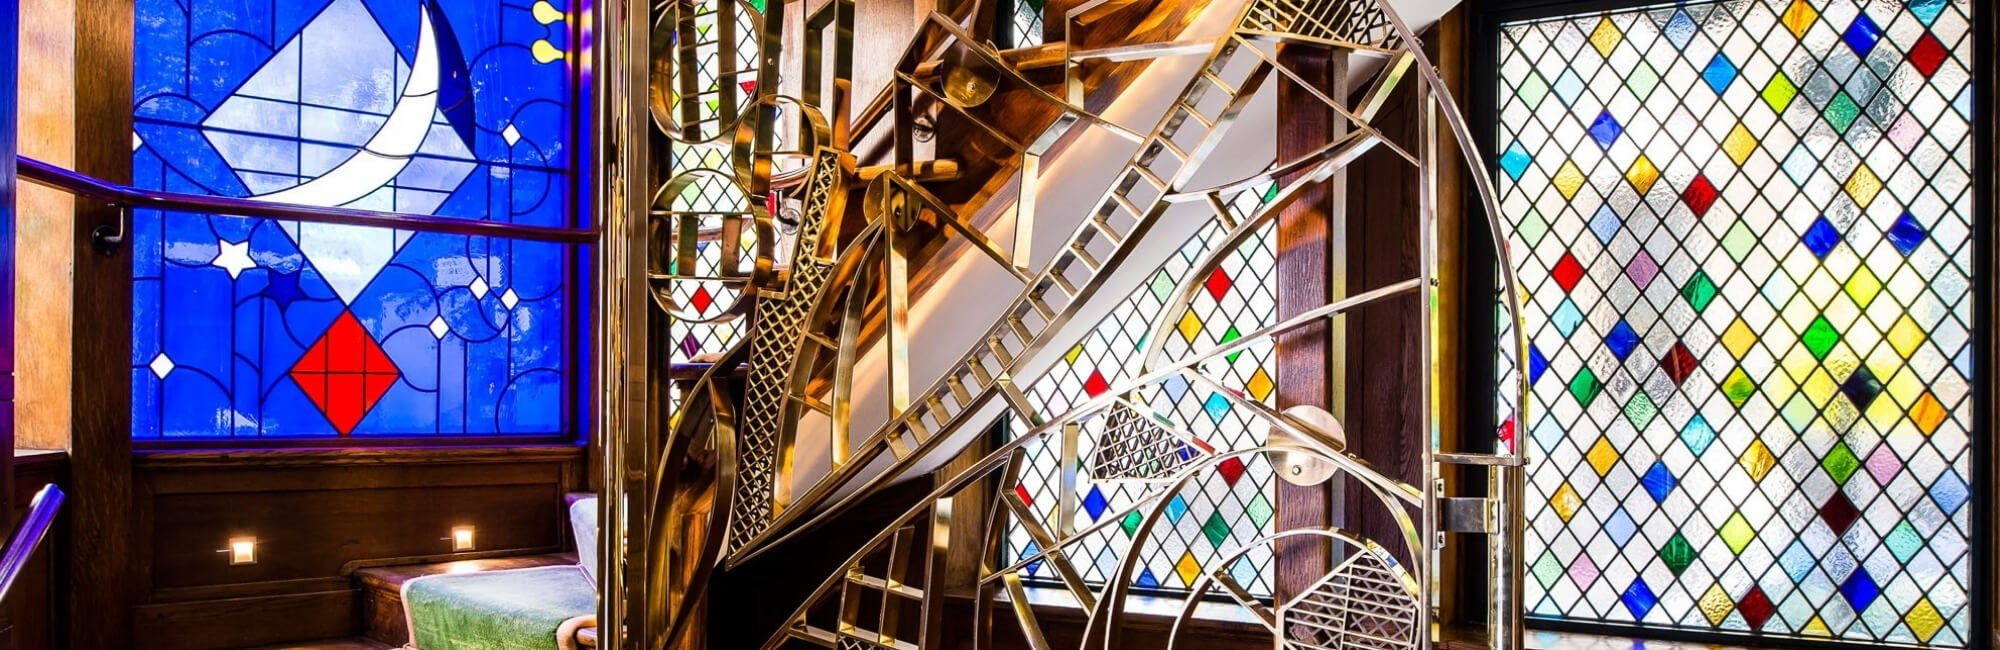 The stained glass windows and staircase at The Ivy West Street, near Leicester Square in London